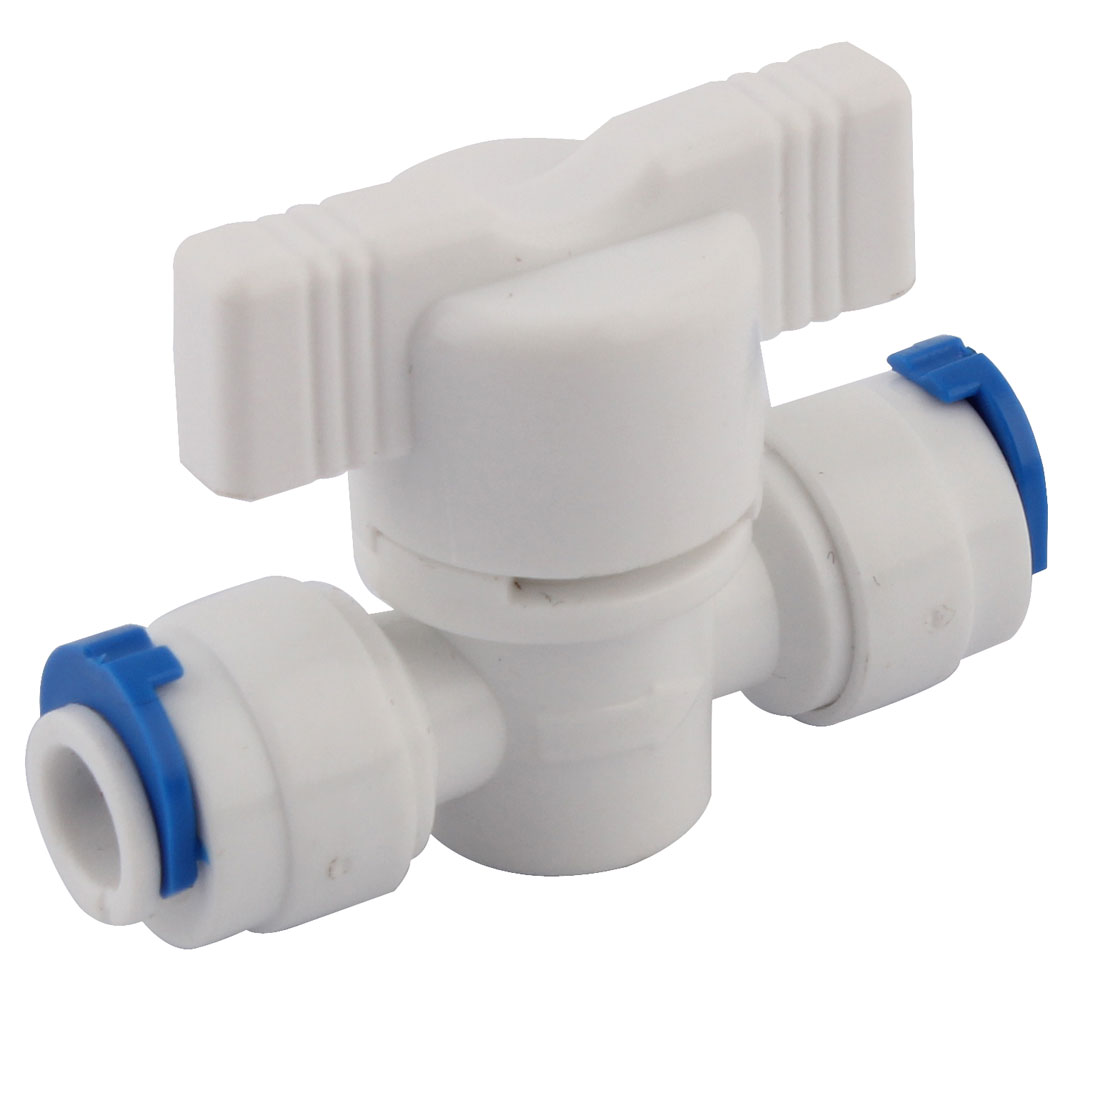 15mm OD Tube Plastic Straight Water Dispenser Valve Quick Adapter Connector